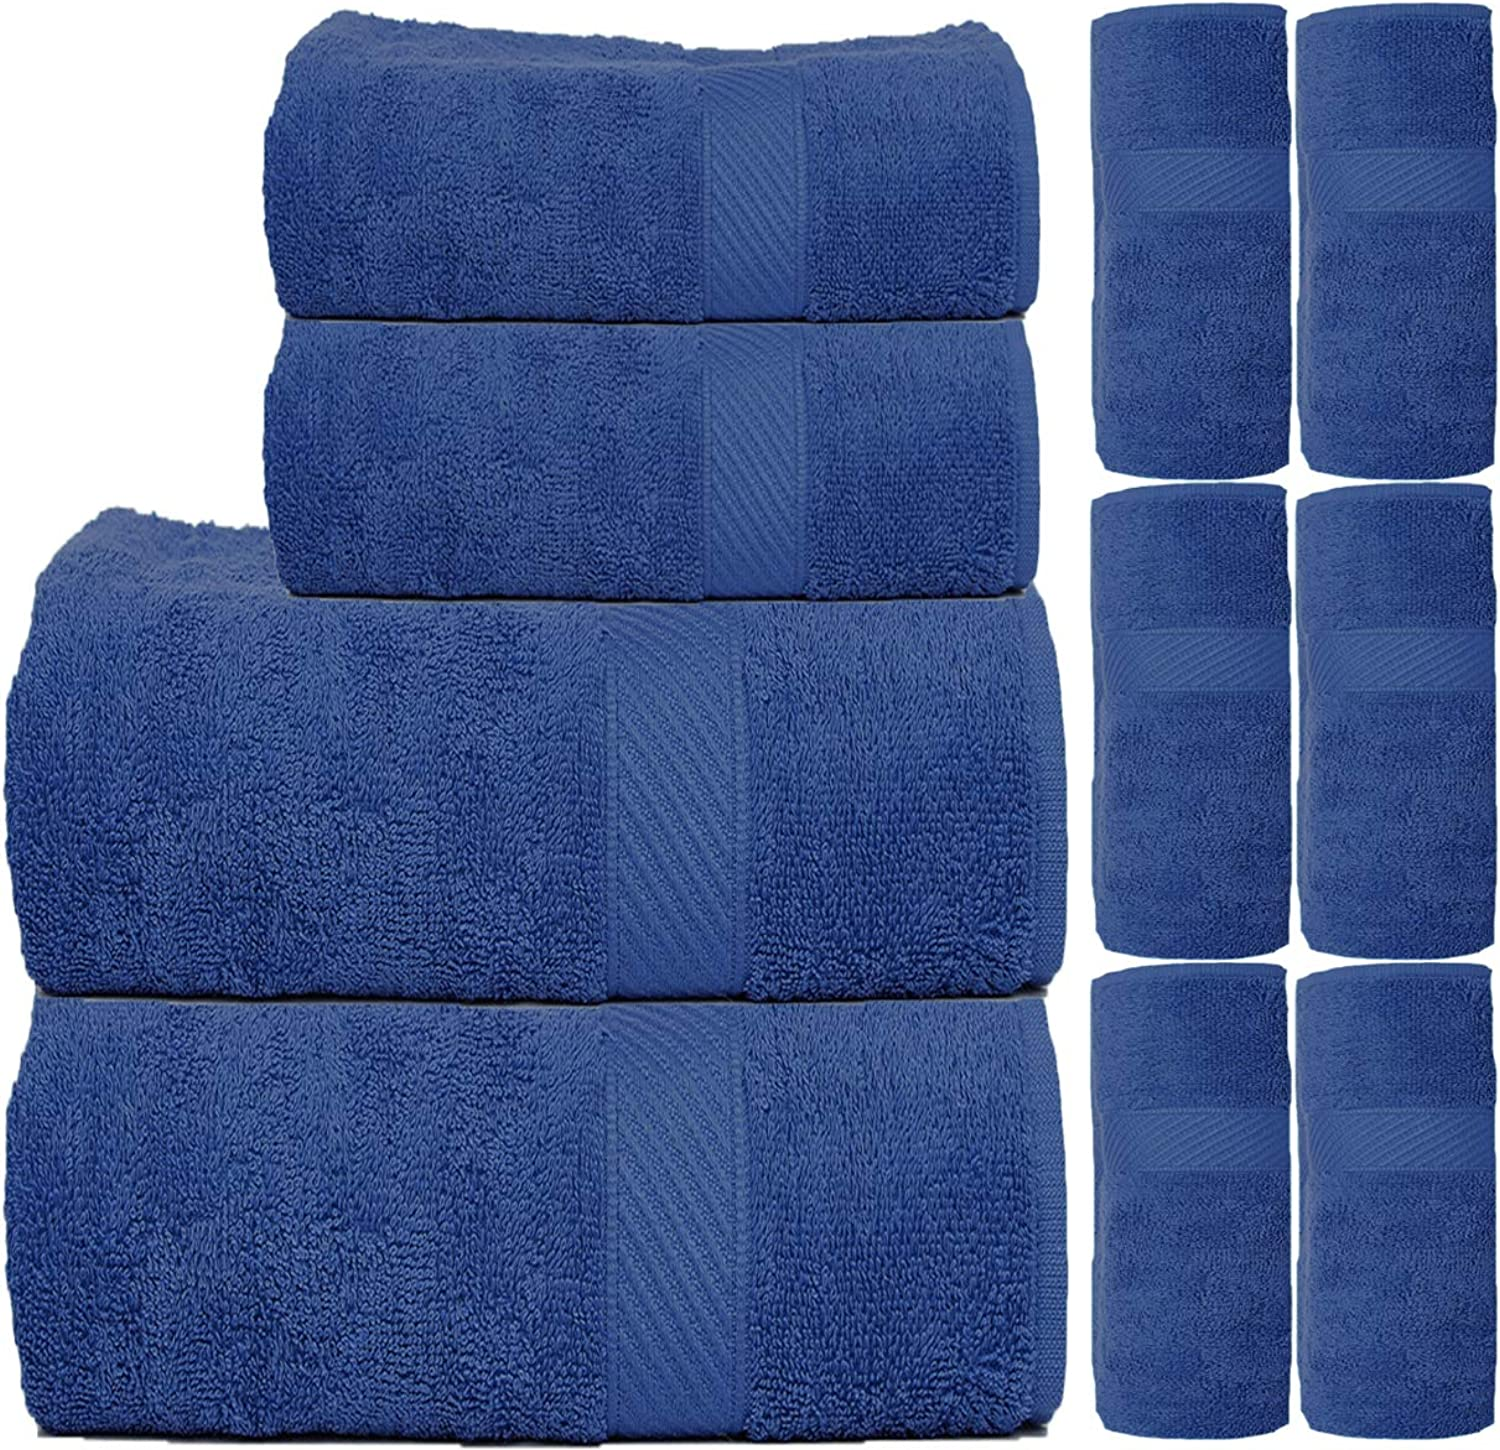 TRIDENT Fast Dry & Super Absorption 450 GSM 10-Pieces (Bath, Hand & Wash Cloth) Towel Set, bluee